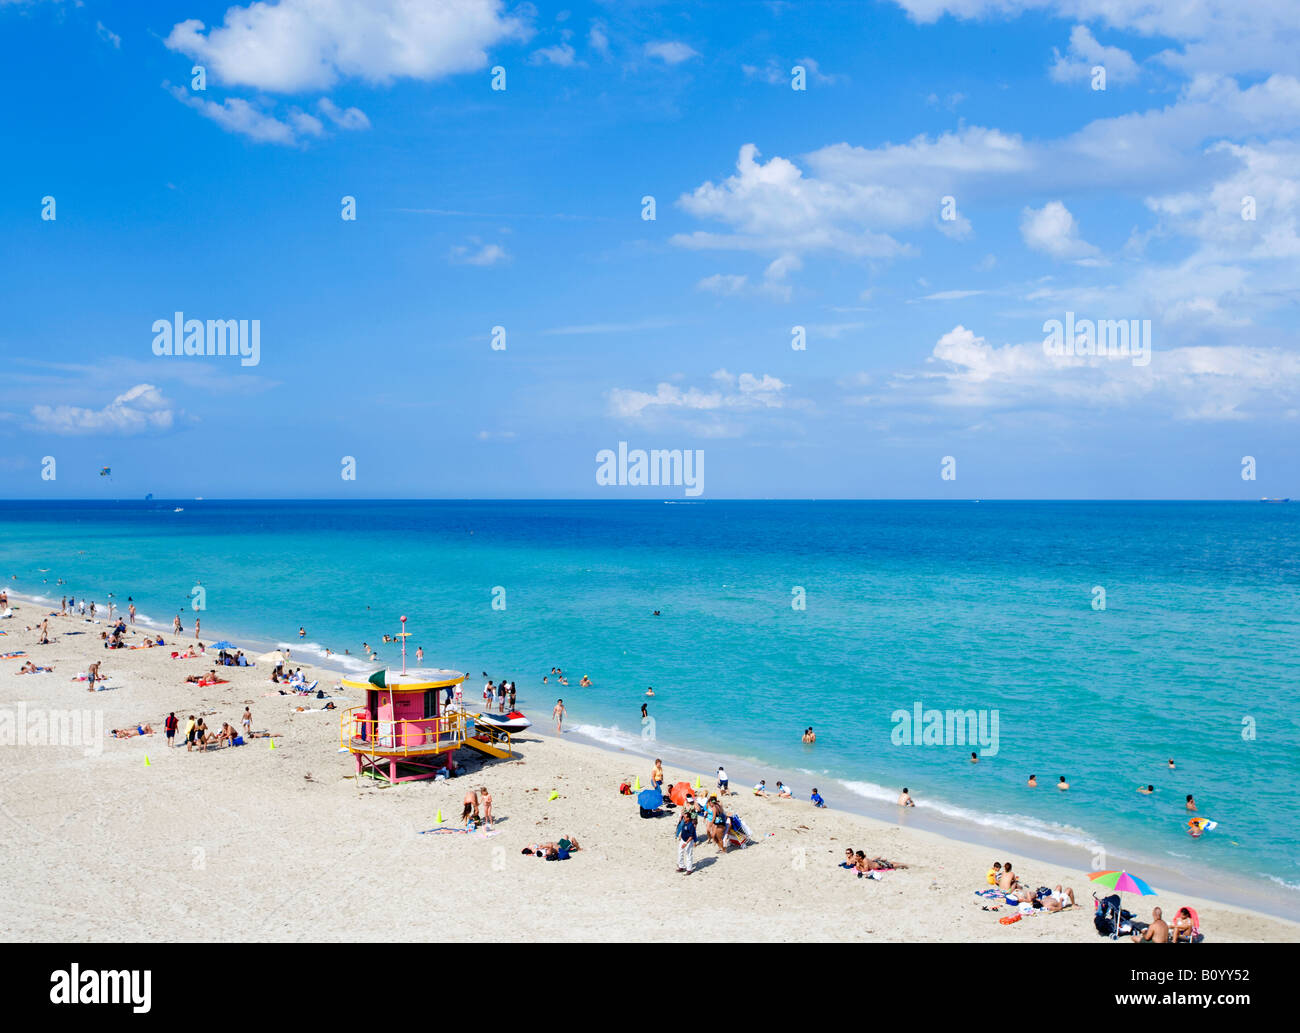 Overview of South Beach in Miami Beach, Florida, USA - Stock Image